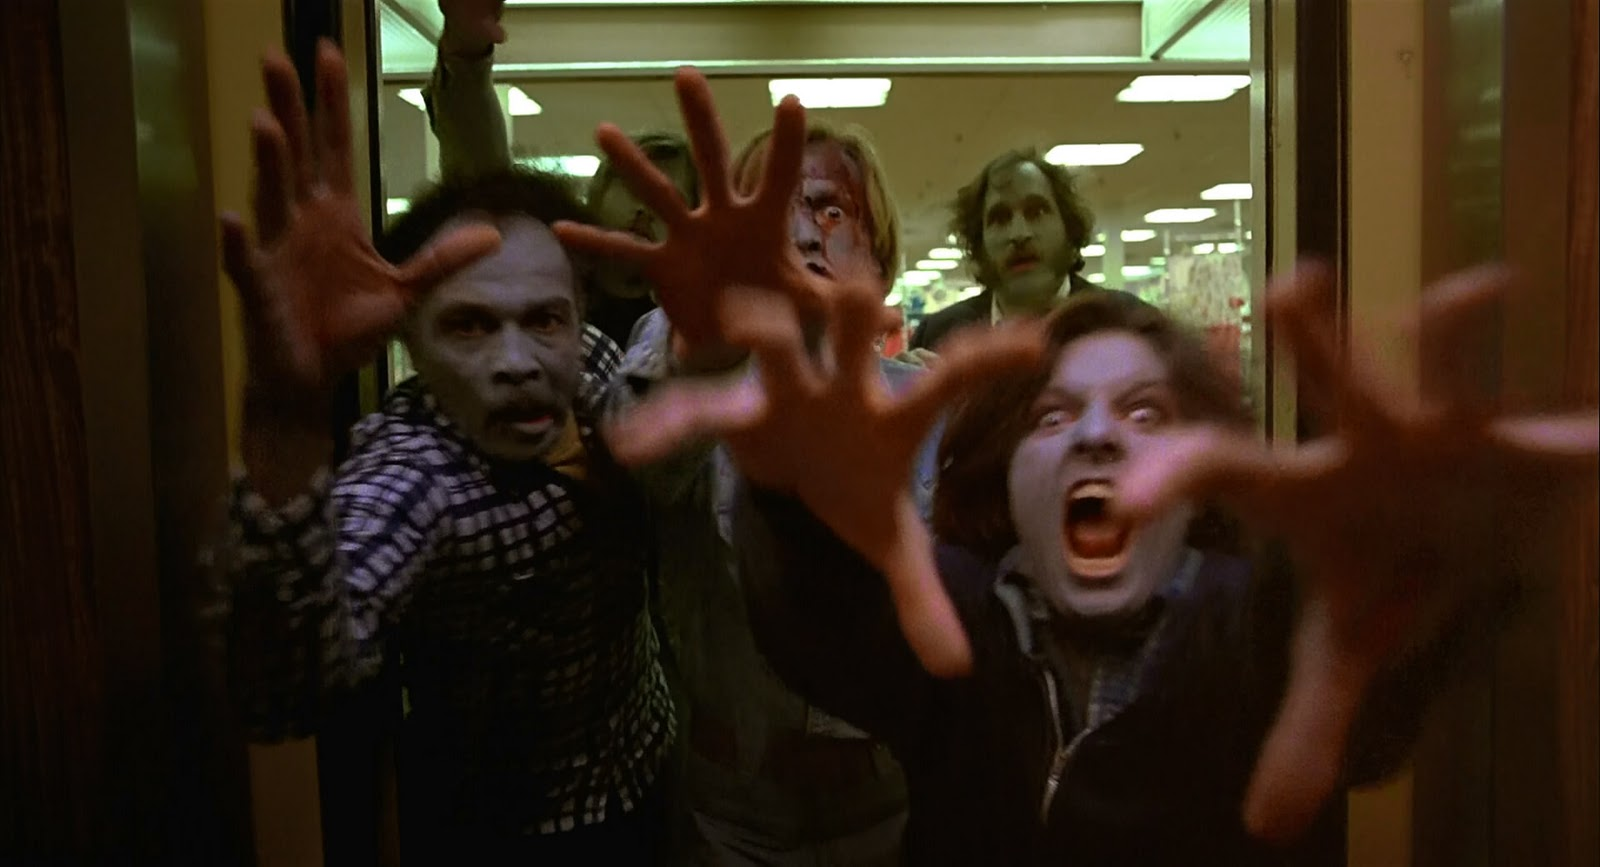 George A. Romero resumed his dark social satire on humanity in DAWN OF THE LIVING DEAD in 1978.